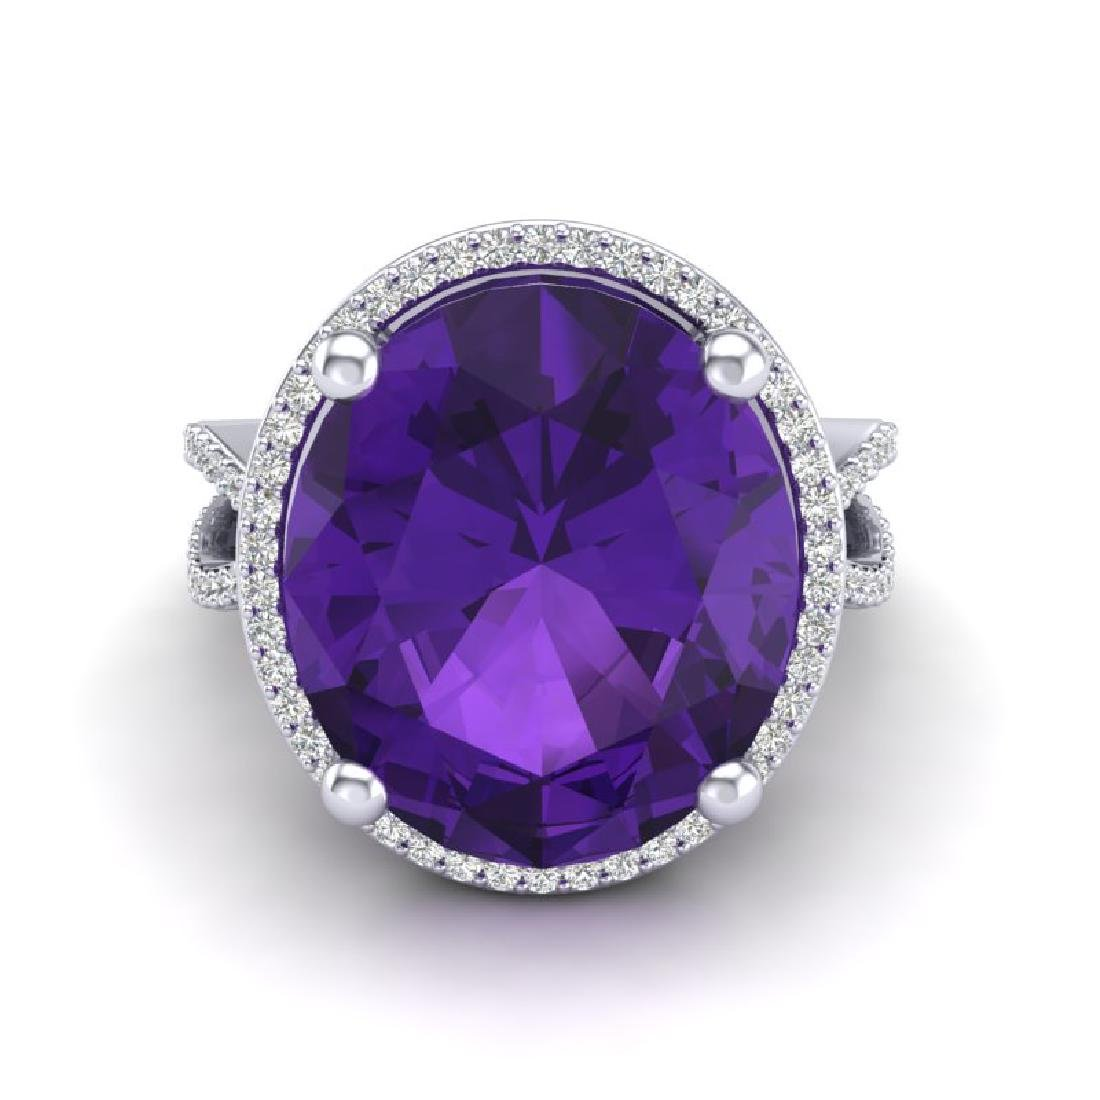 10 CTW Amethyst & Micro Pave VS/SI Diamond Halo Ring